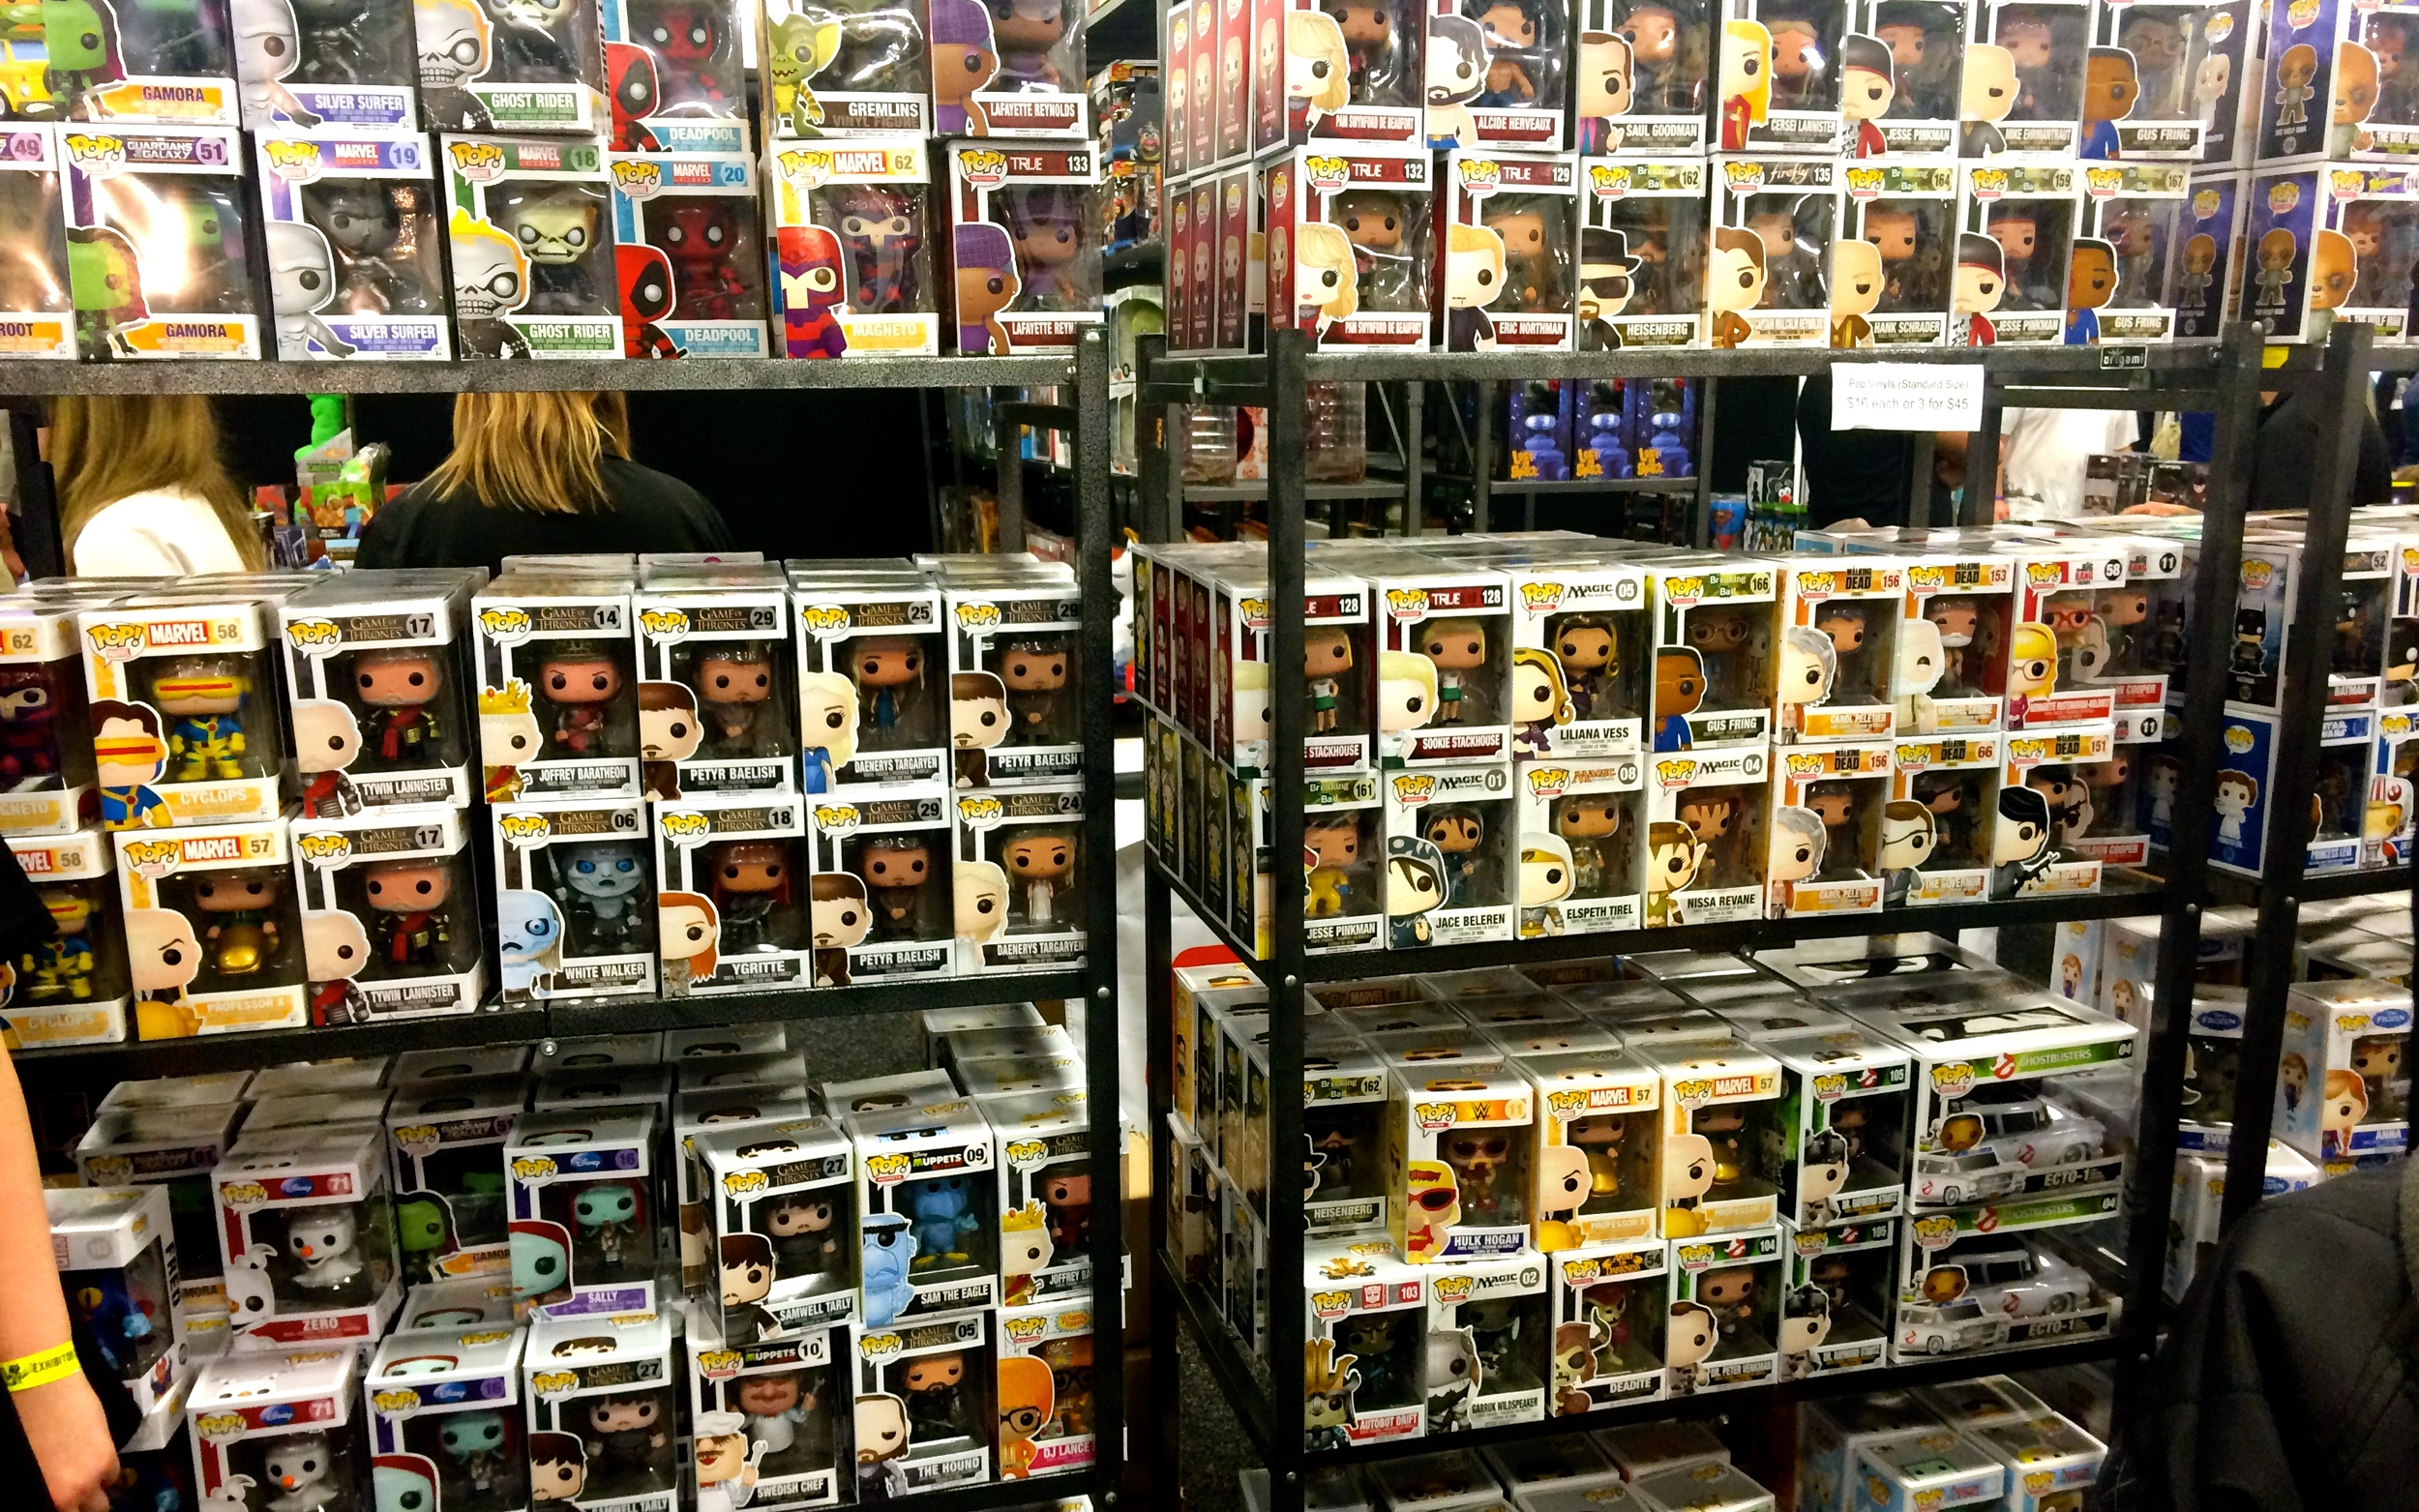 One of the many walls of Pop Vinyls at Oz Comic Con